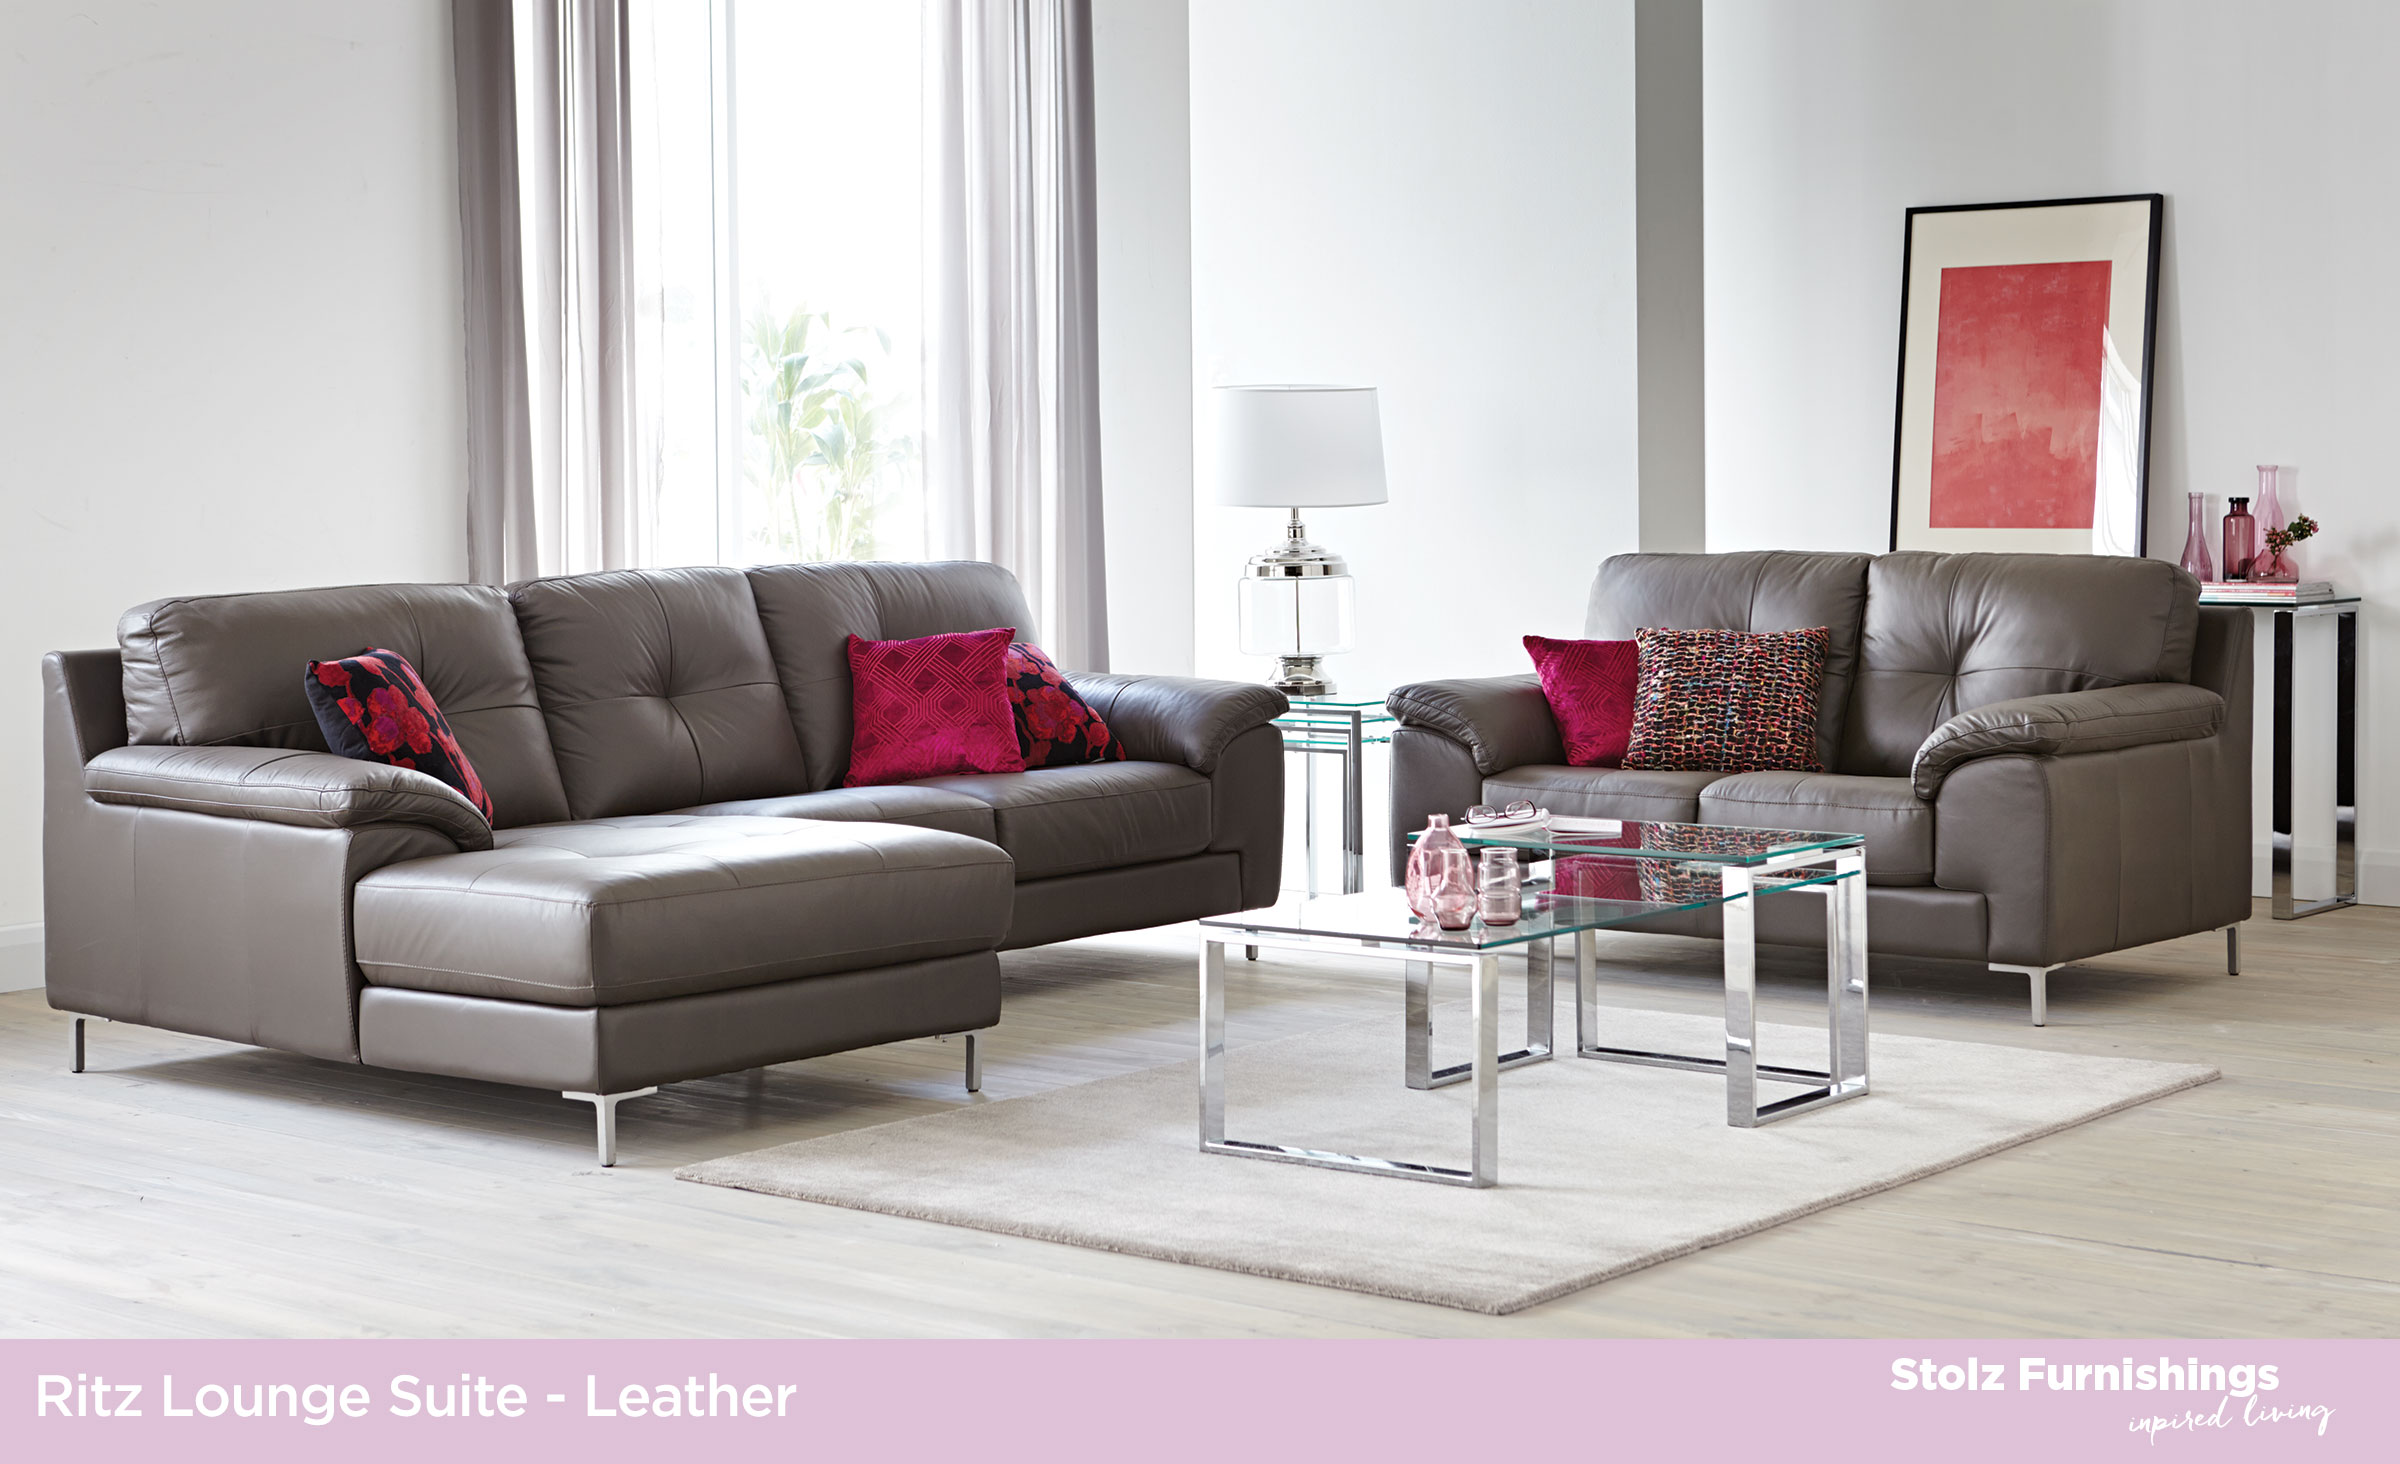 100 Leather Lounge Suites Stolz Furnishings